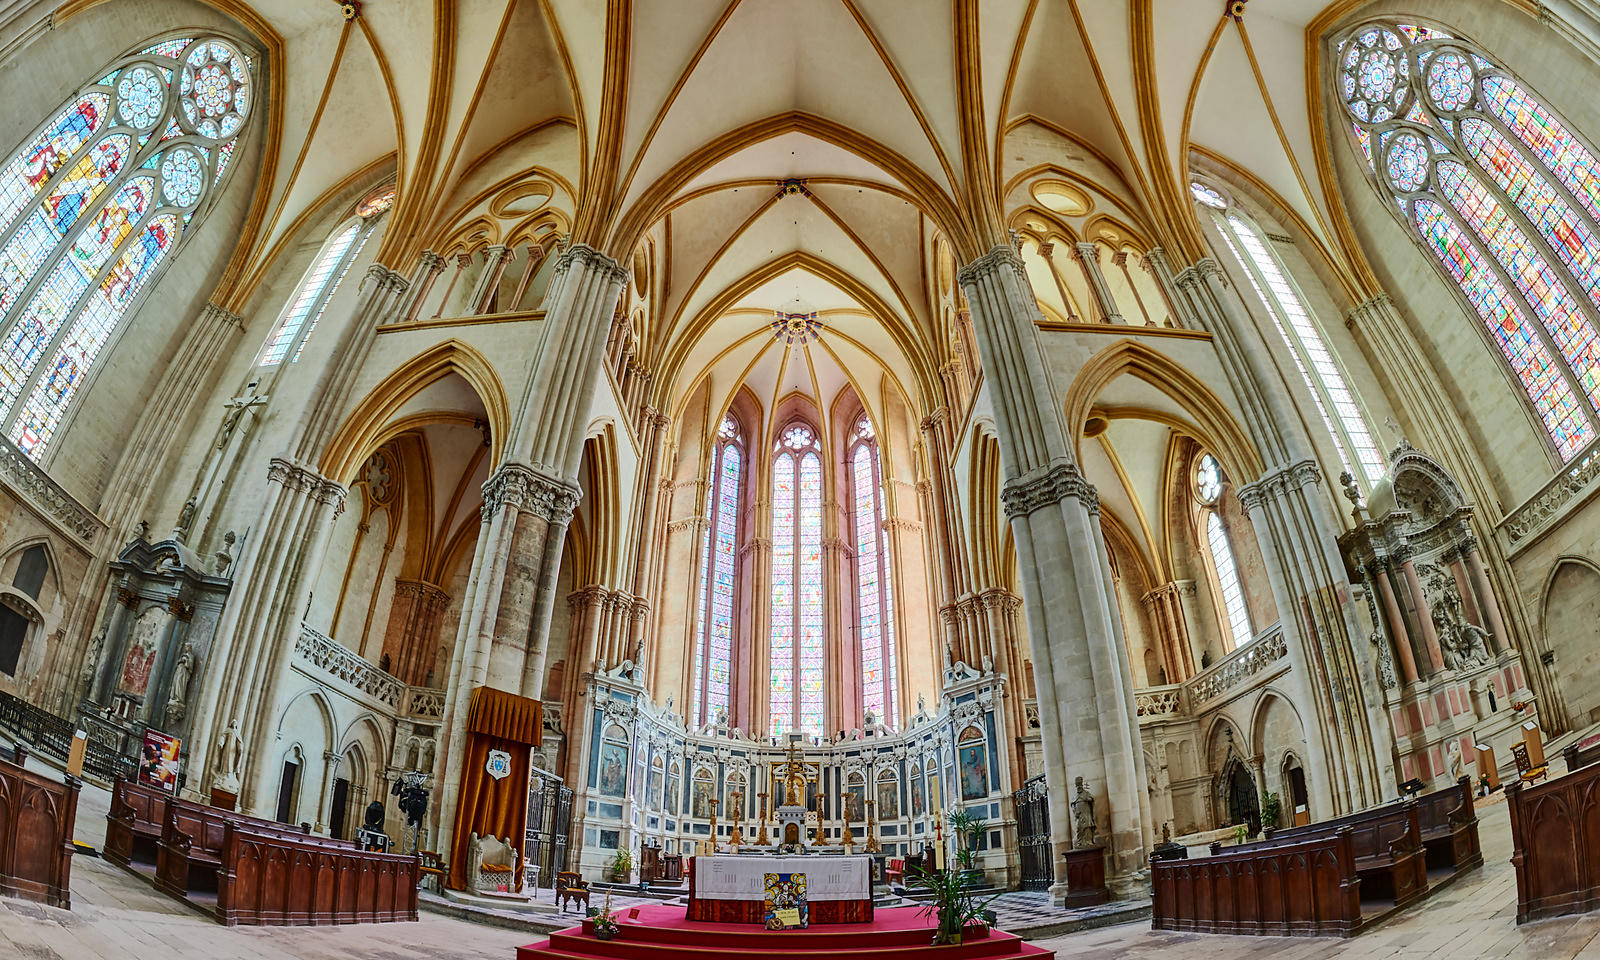 toul-cathedrale_fisheye